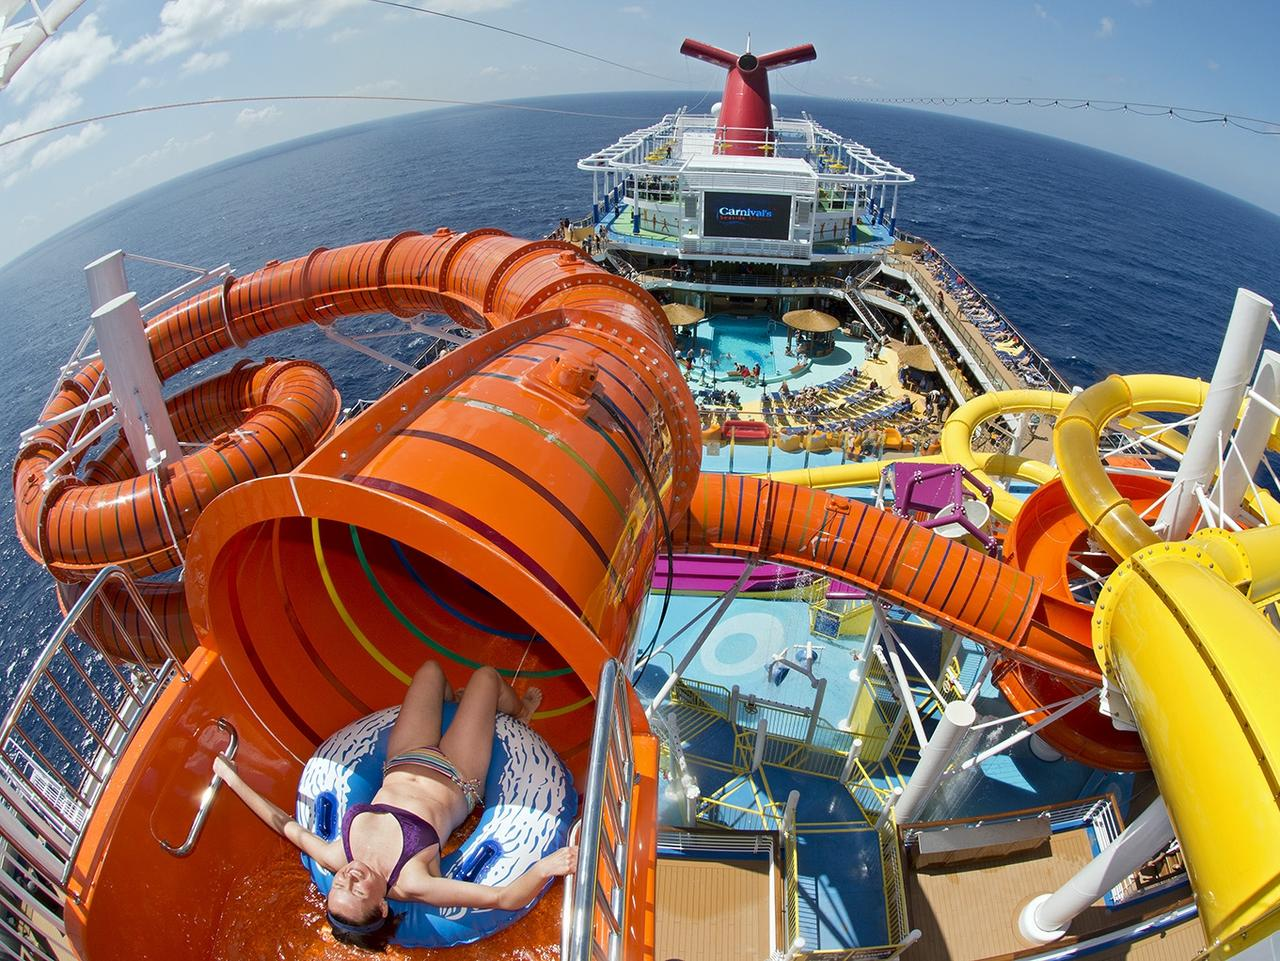 A guest onboard Carnival Vista slides down Kaleid-O-Slide, a water tube attraction situated amid WaterWorks, the ship's onboard water park. (Photo by Andy Newman/Carnival Cruise Line). Sunday Escape